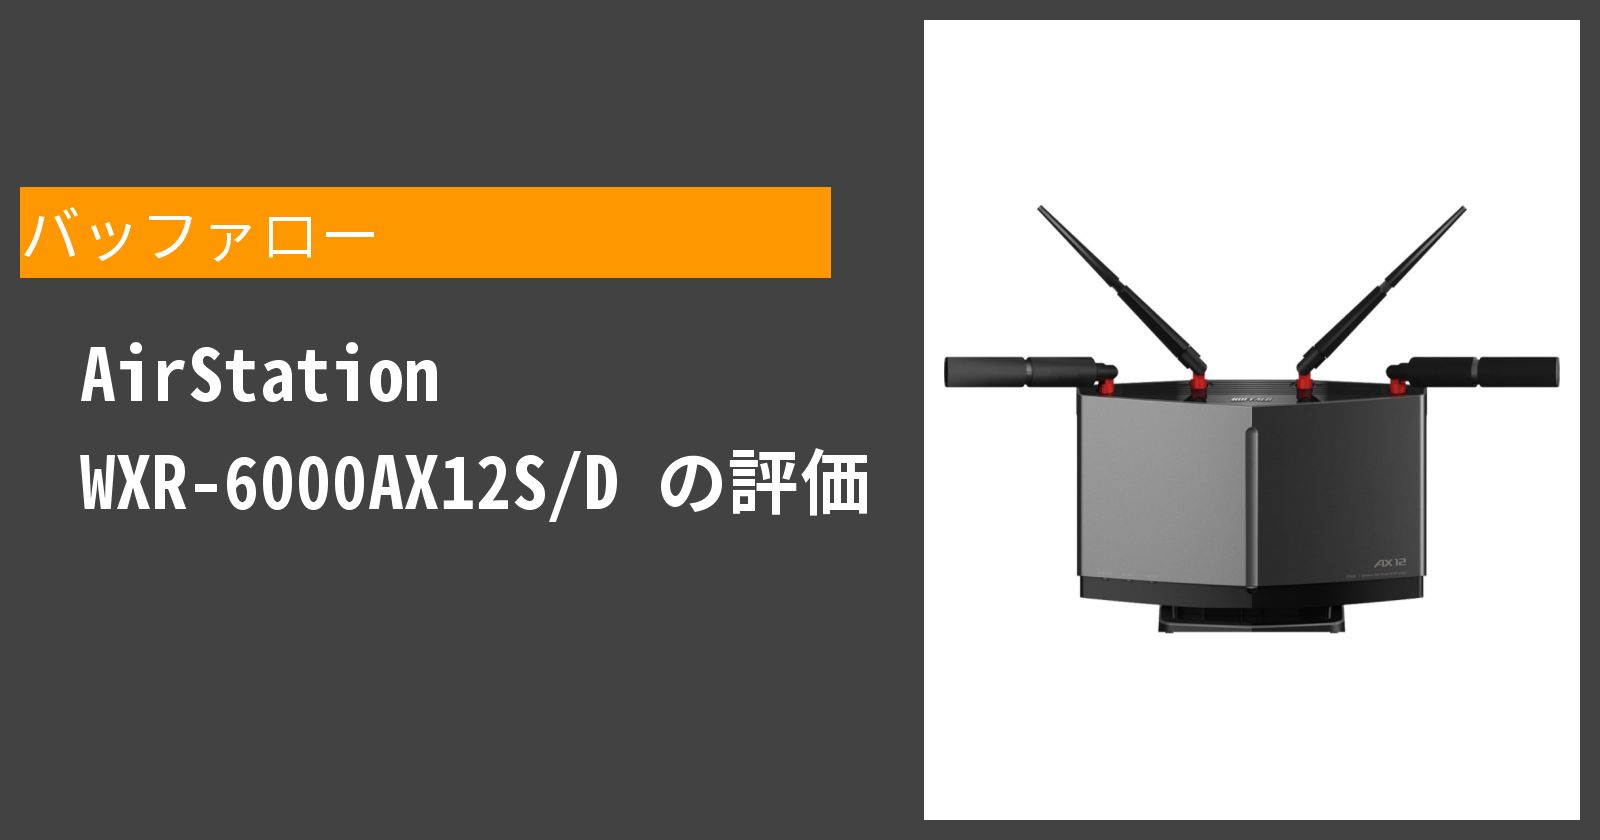 AirStation WXR-6000AX12S/Dを徹底評価